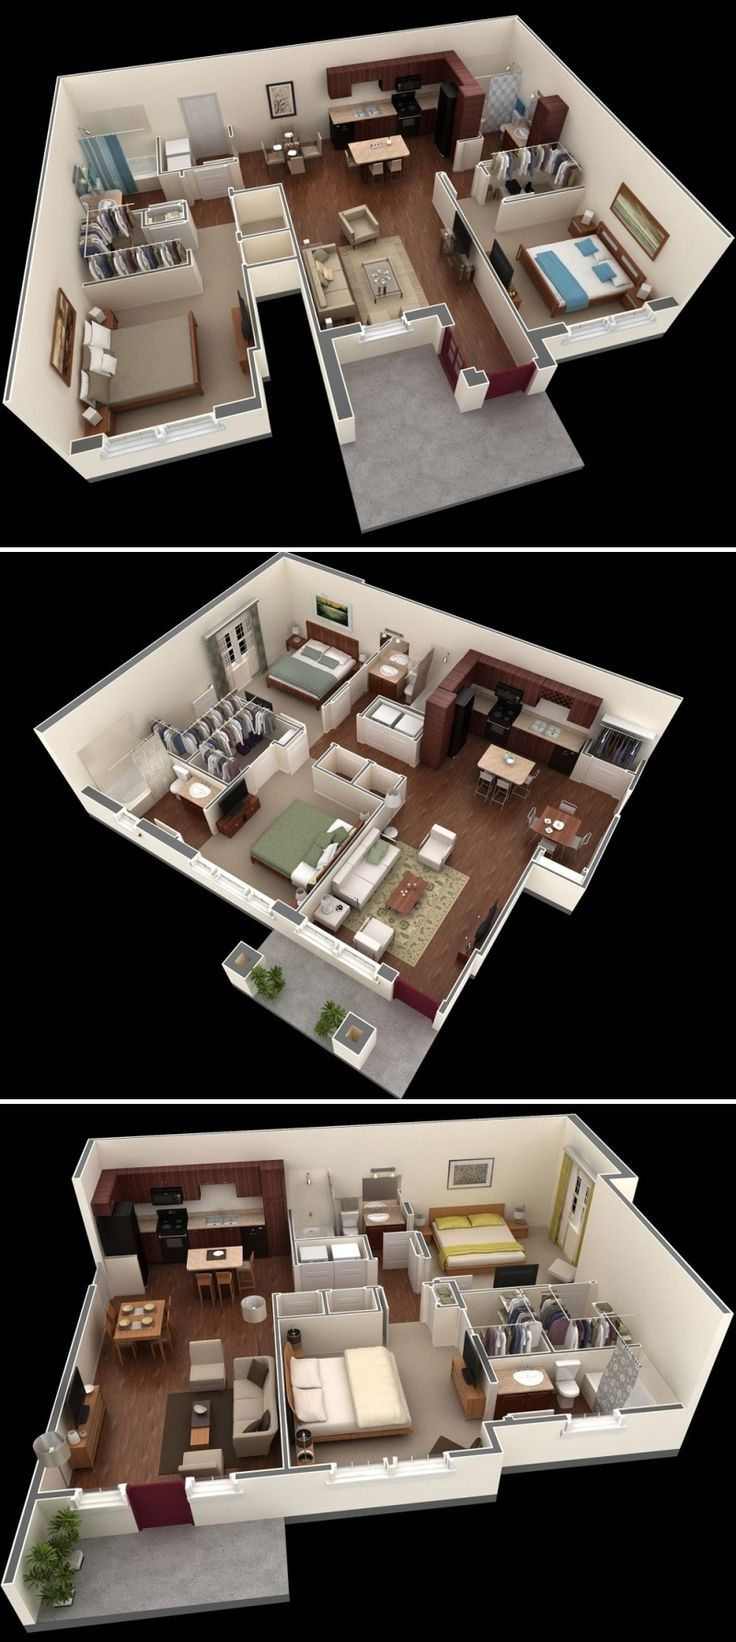 2 Bedroom Apartment House Plans | Source: Springs Apartments